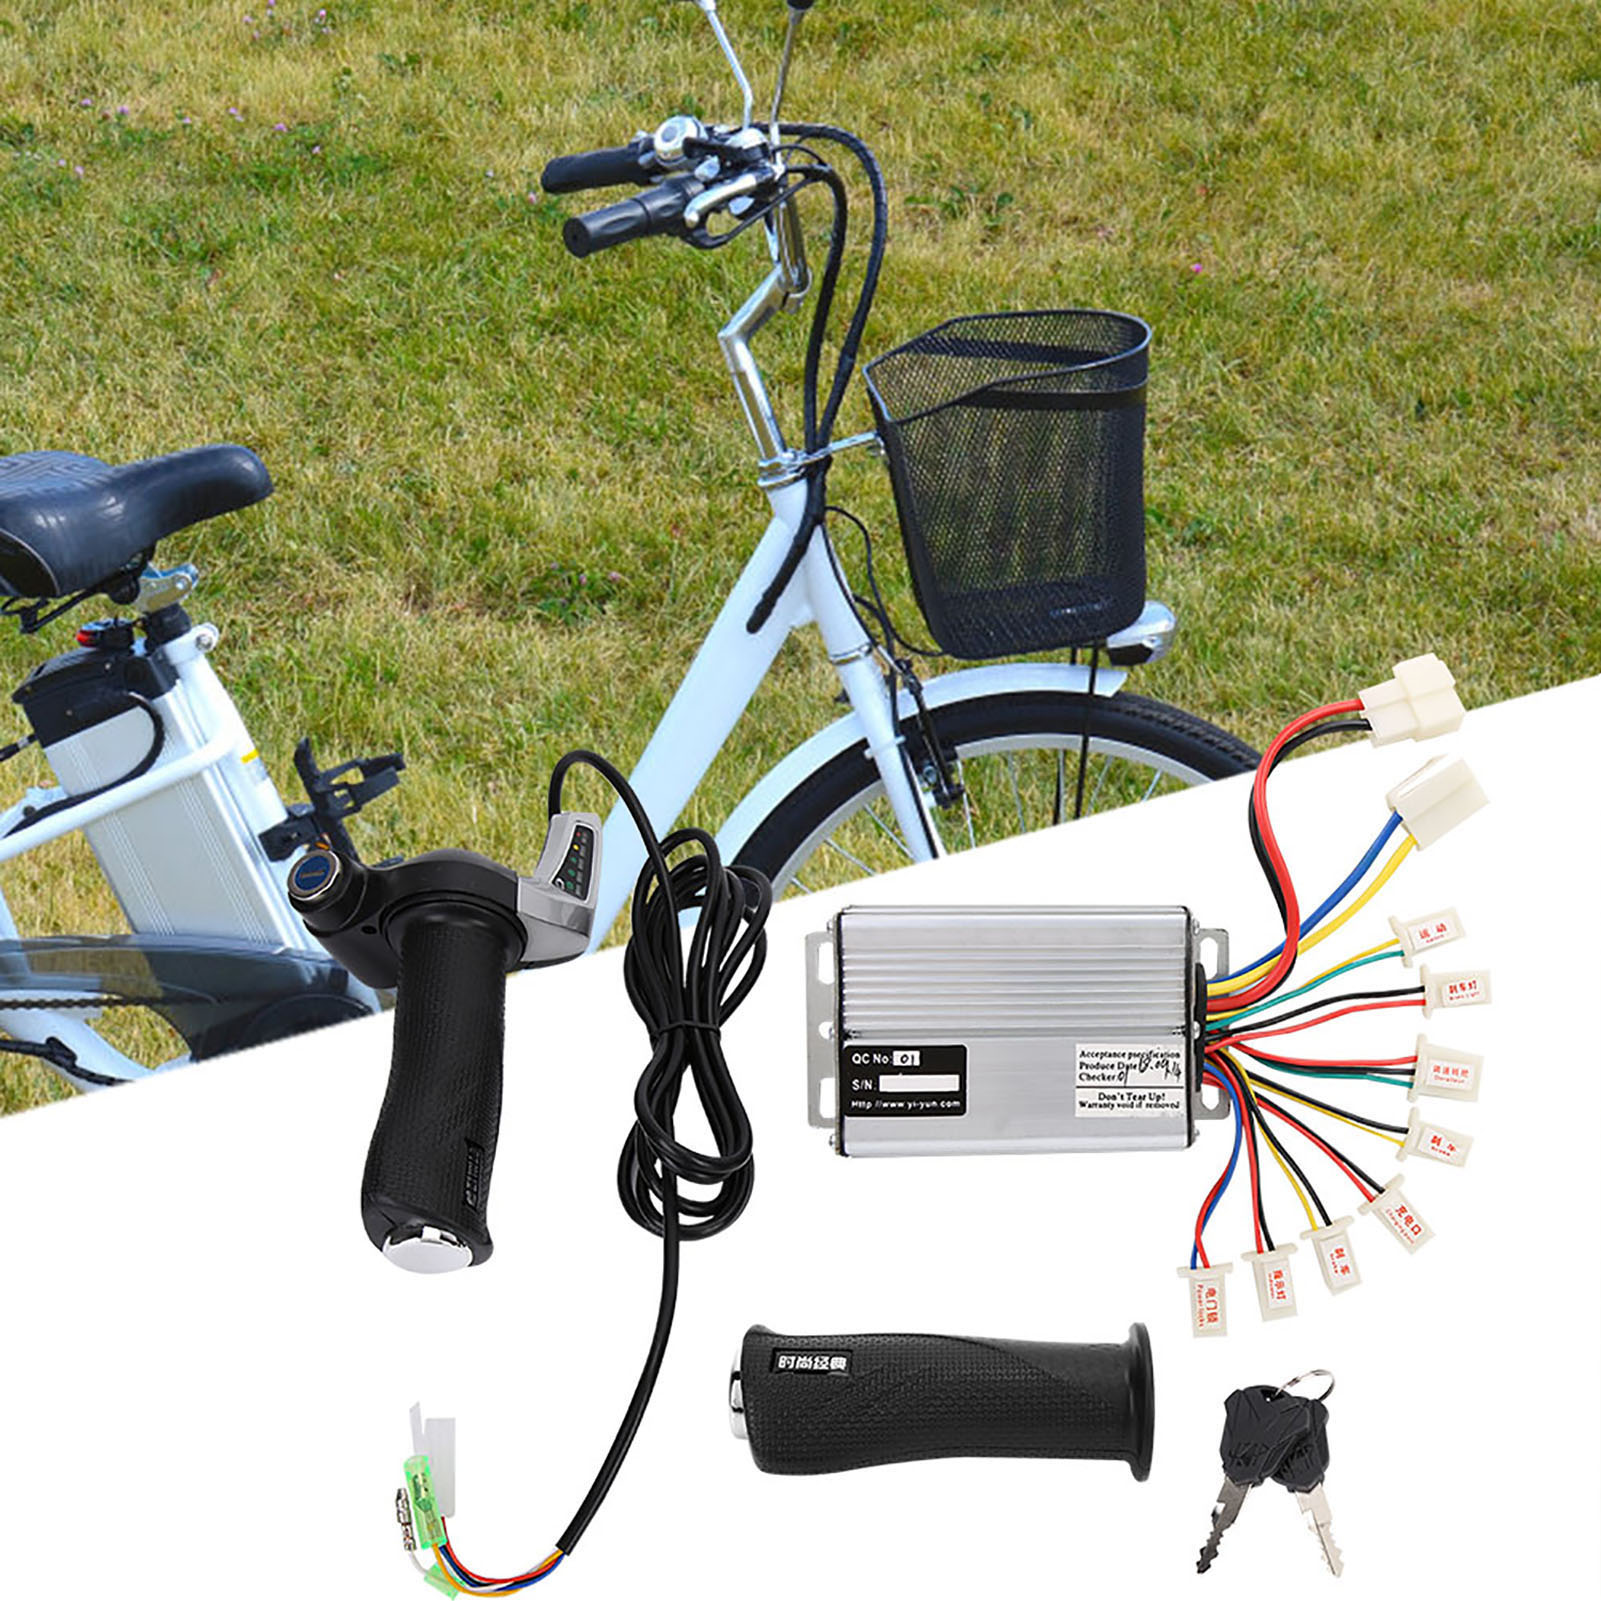 500W-1000W-Motor-Brushed-Speed-Controller-Box-for-Electric-Bicycle-amp-Scooter-Bike thumbnail 24